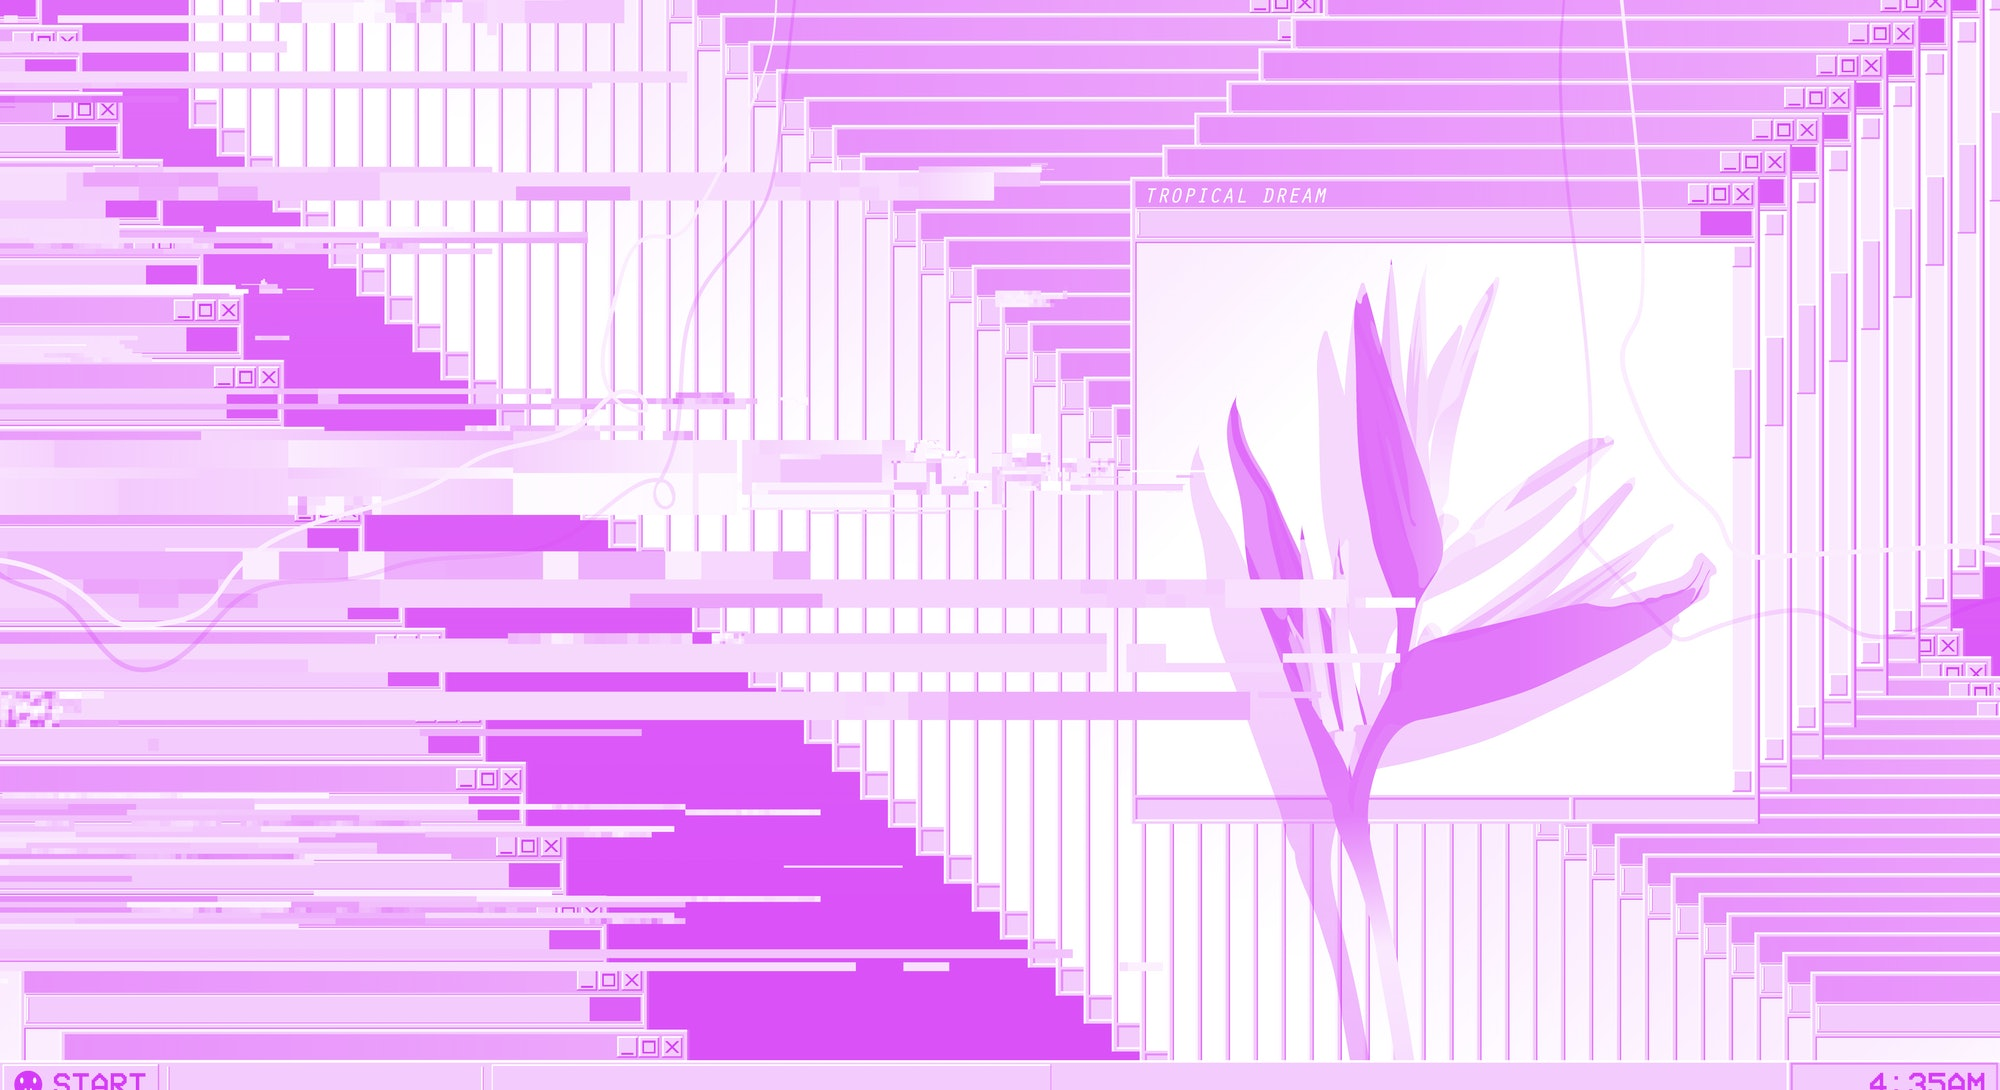 Operation system desktop display glitch and error with tropical bird of paradise flower, vaporwave nostalgic background template